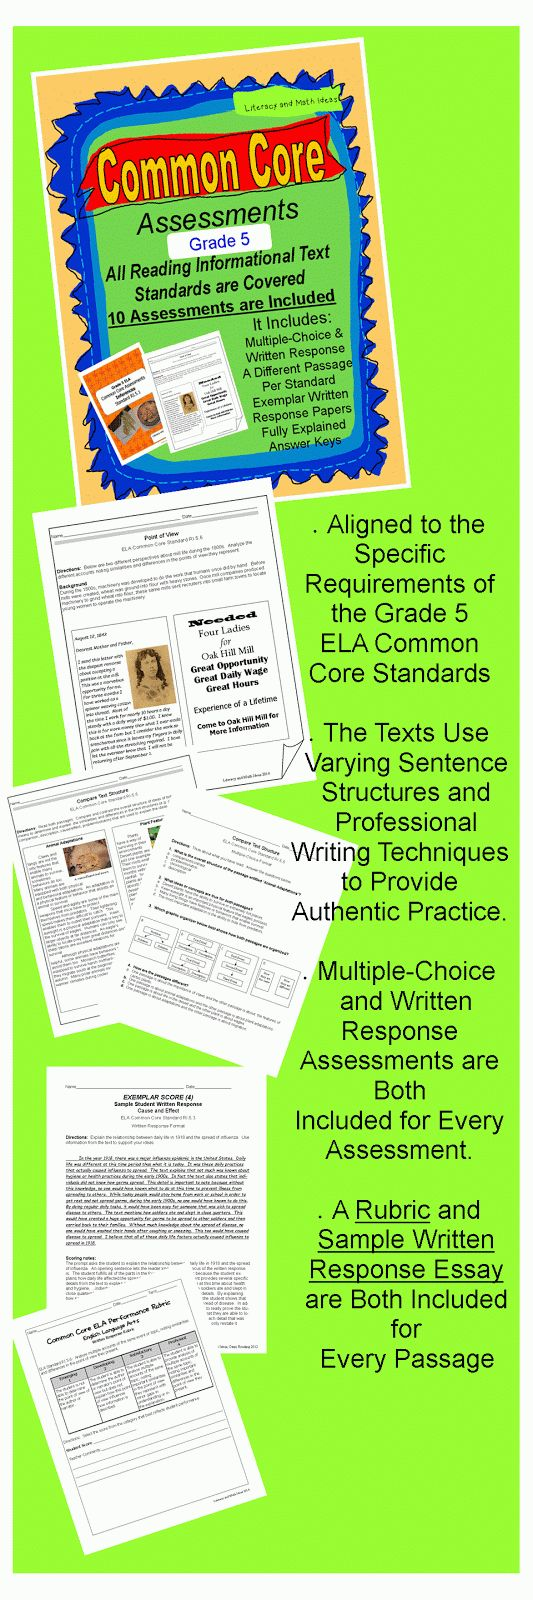 reading assessment essay English language arts (ela) assessment reading, writing, listening and speaking, and research.